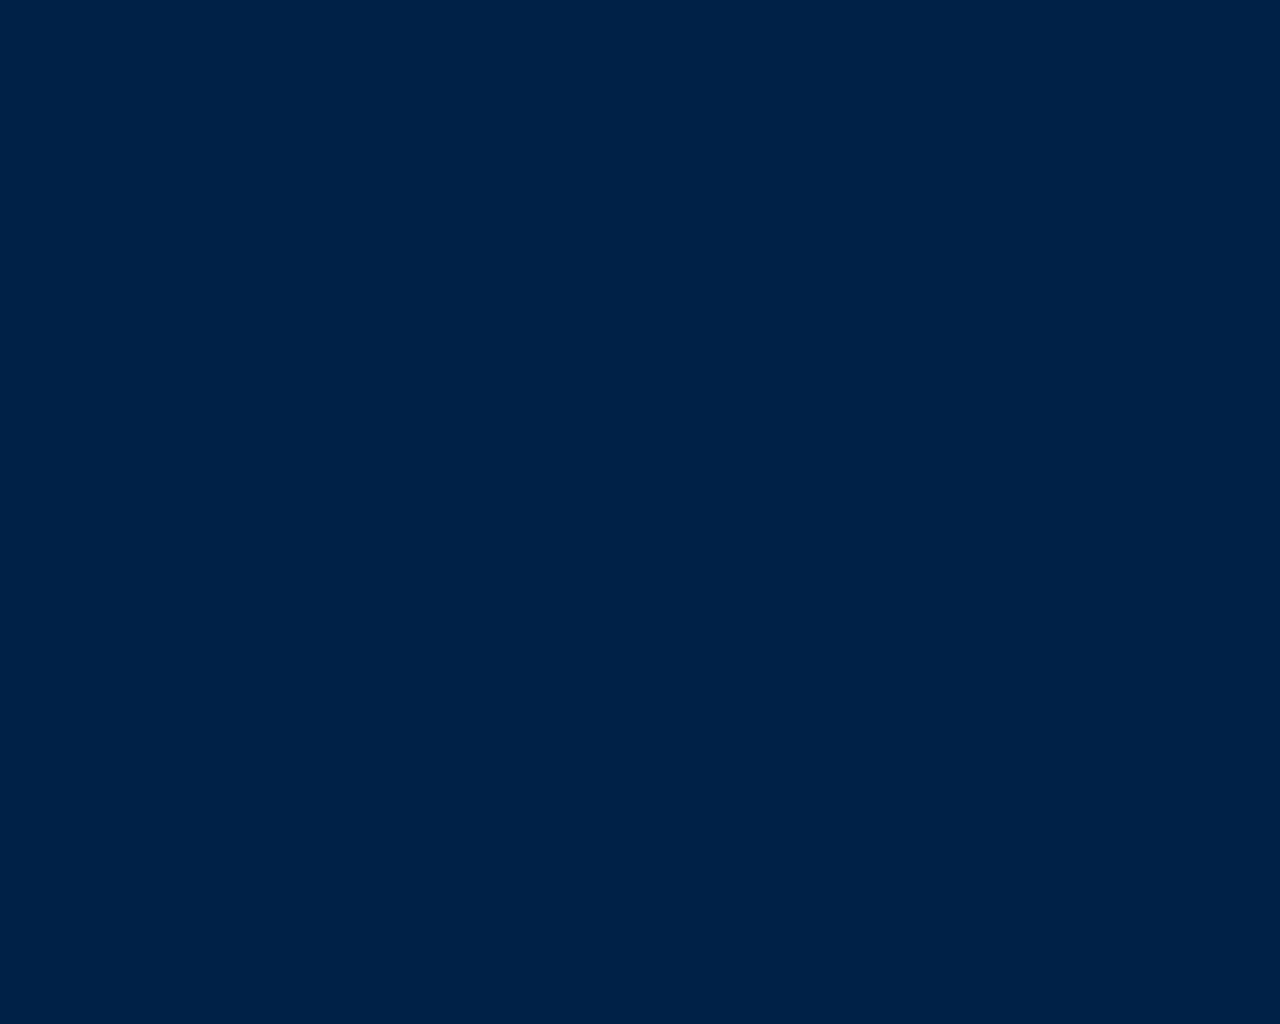 1280x1024 Oxford Blue Solid Color Background